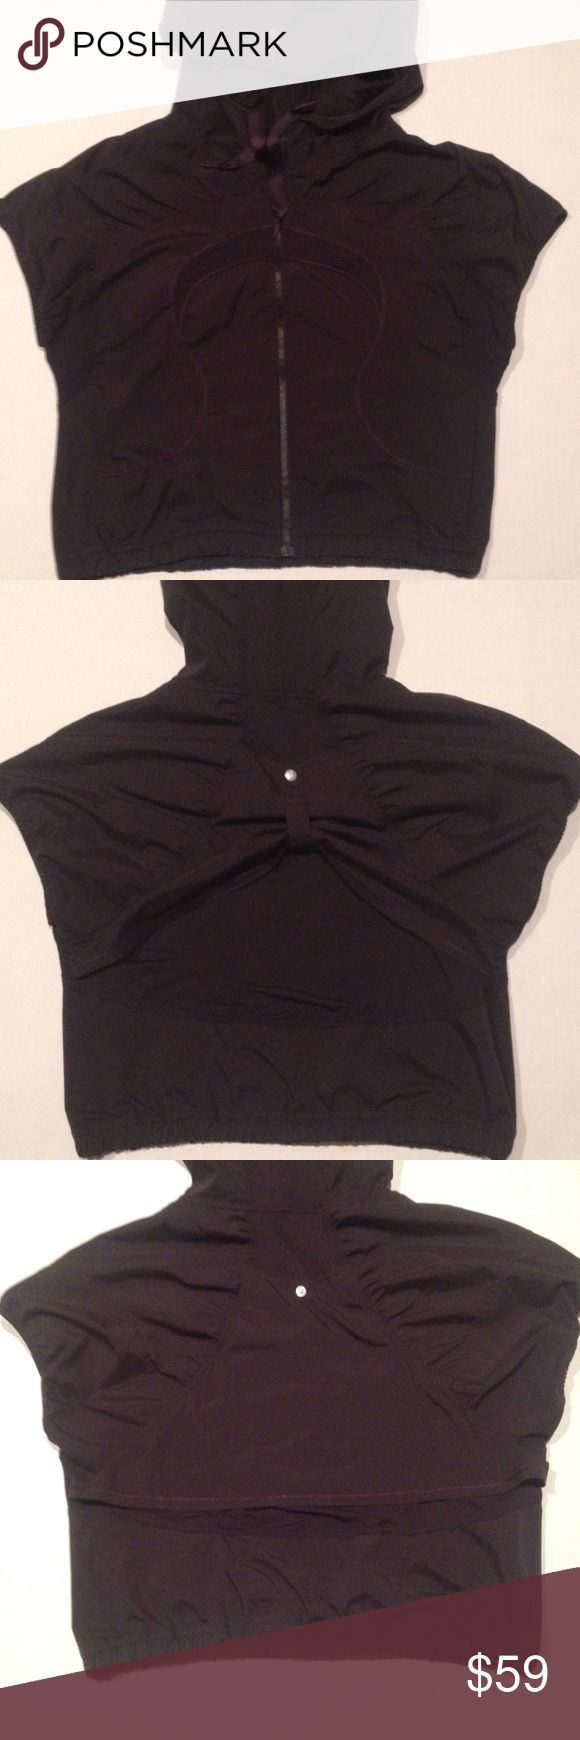 Lululemon Hooded Vest Lightweight hooded vest. Full front zipper. Two side zip pockets. Sleeveless. Back snap closer for different style look. No inside tag with size do go by the following measurements. Chest 40. Back length is 18 inches. lululemon athletica Jackets & Coats Vests